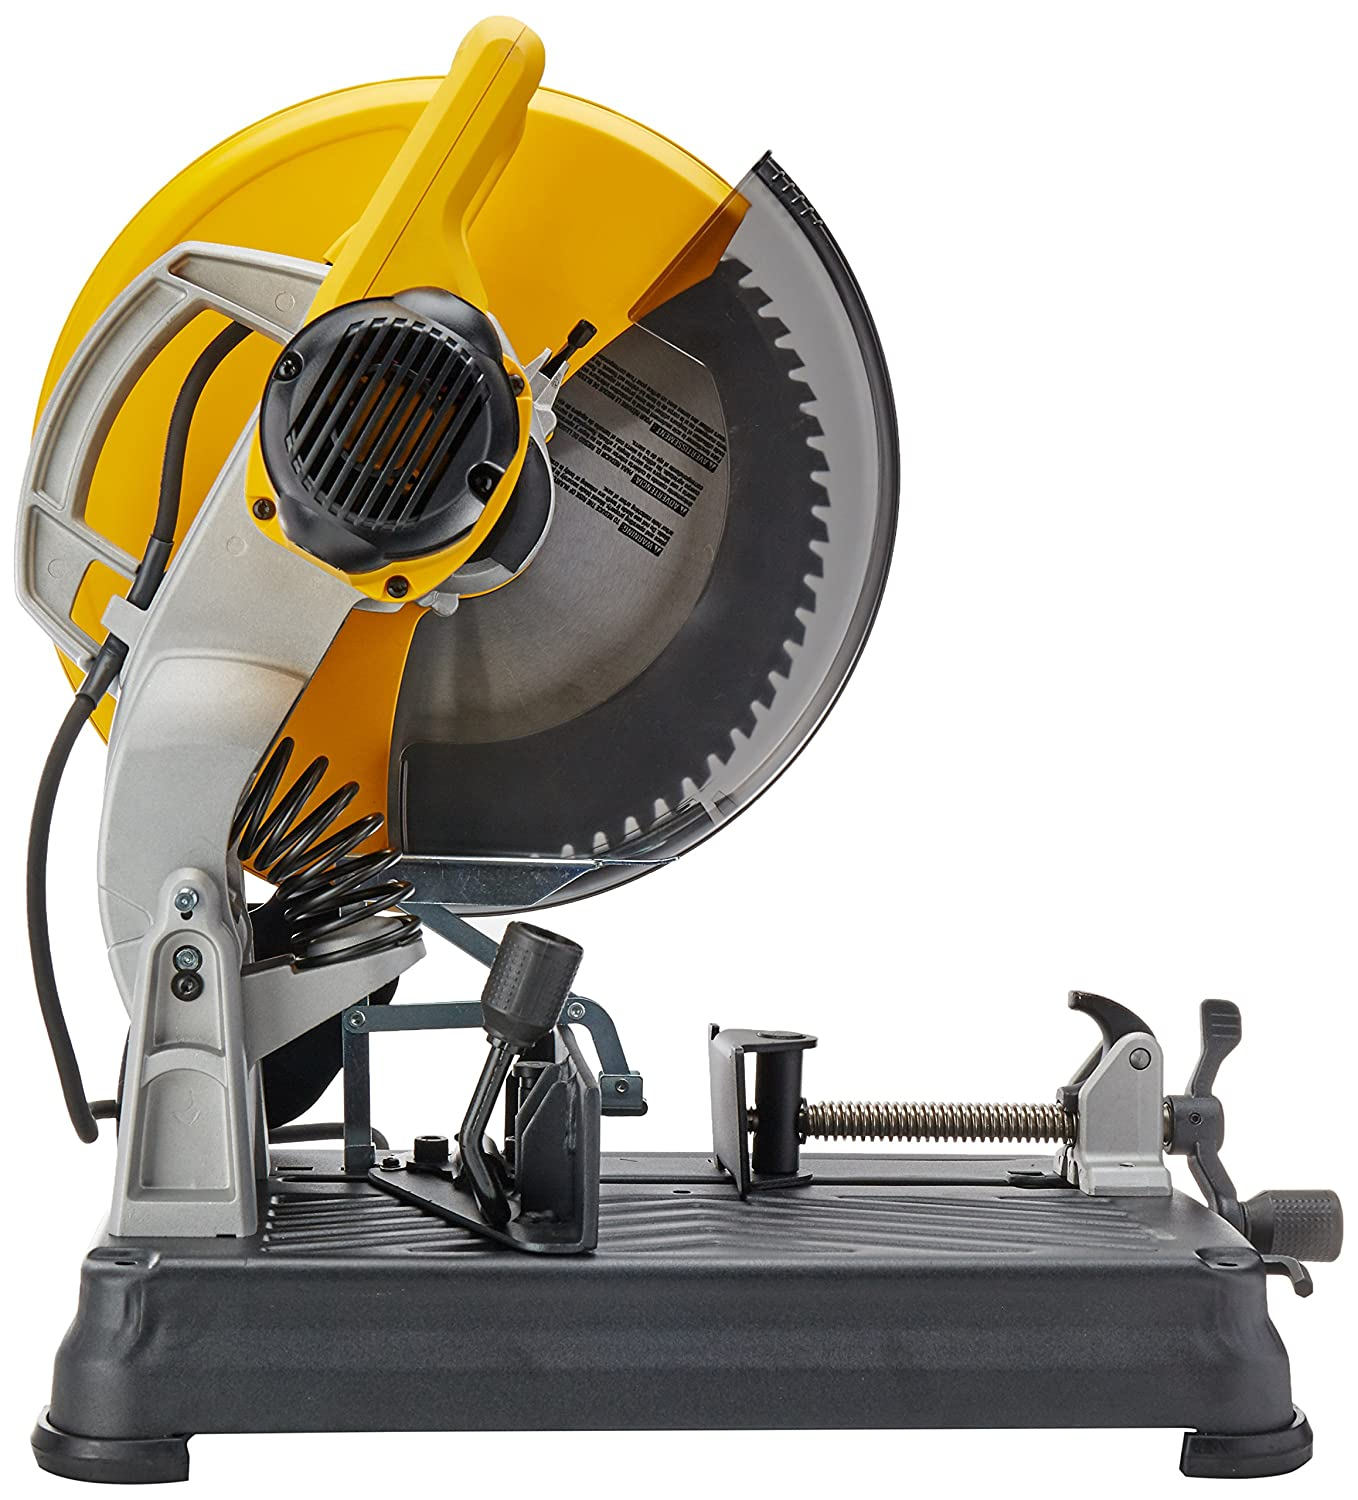 Best Metal Chop Saw to Buy in 2019 - A Definitive Buyer's Guide